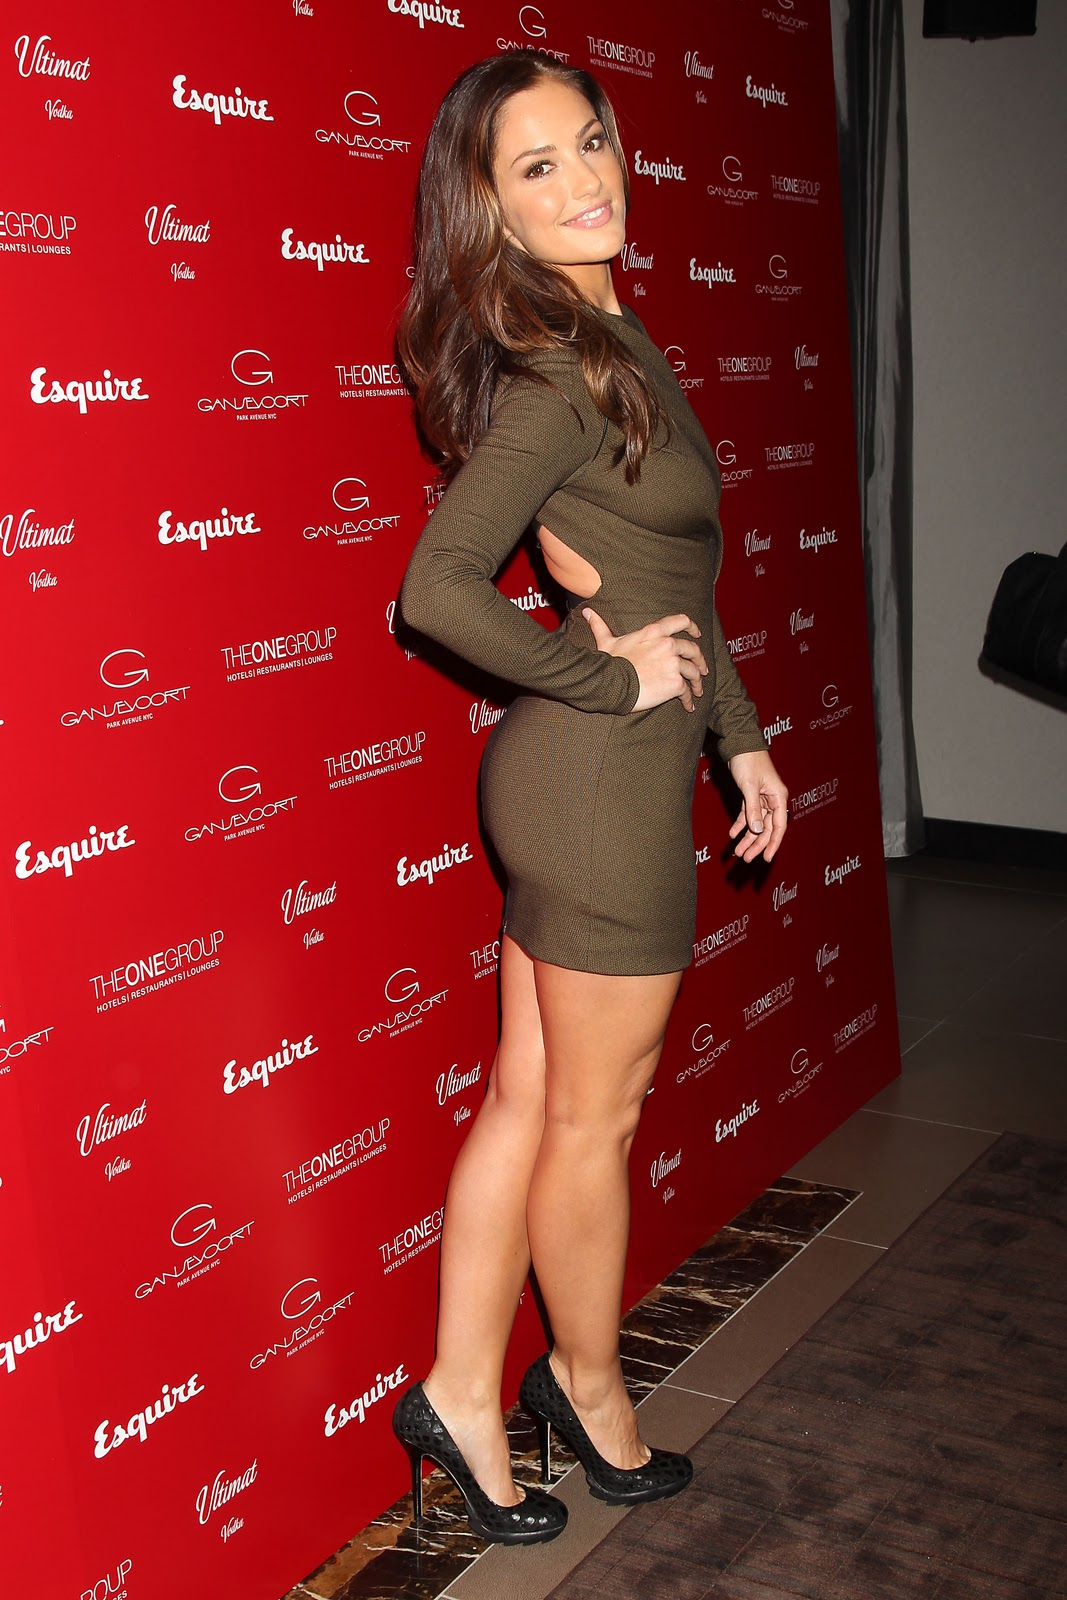 http://1.bp.blogspot.com/_8-fdcmHQIgk/TMs6d7q05EI/AAAAAAAAEJg/aAXIr8ibGm4/s1600/39300_Minka_Kelly_Esquires_Sexiest_Woman_Alive_Celebration_in_NYC_October_27_2010_19_122_405lo.jpg